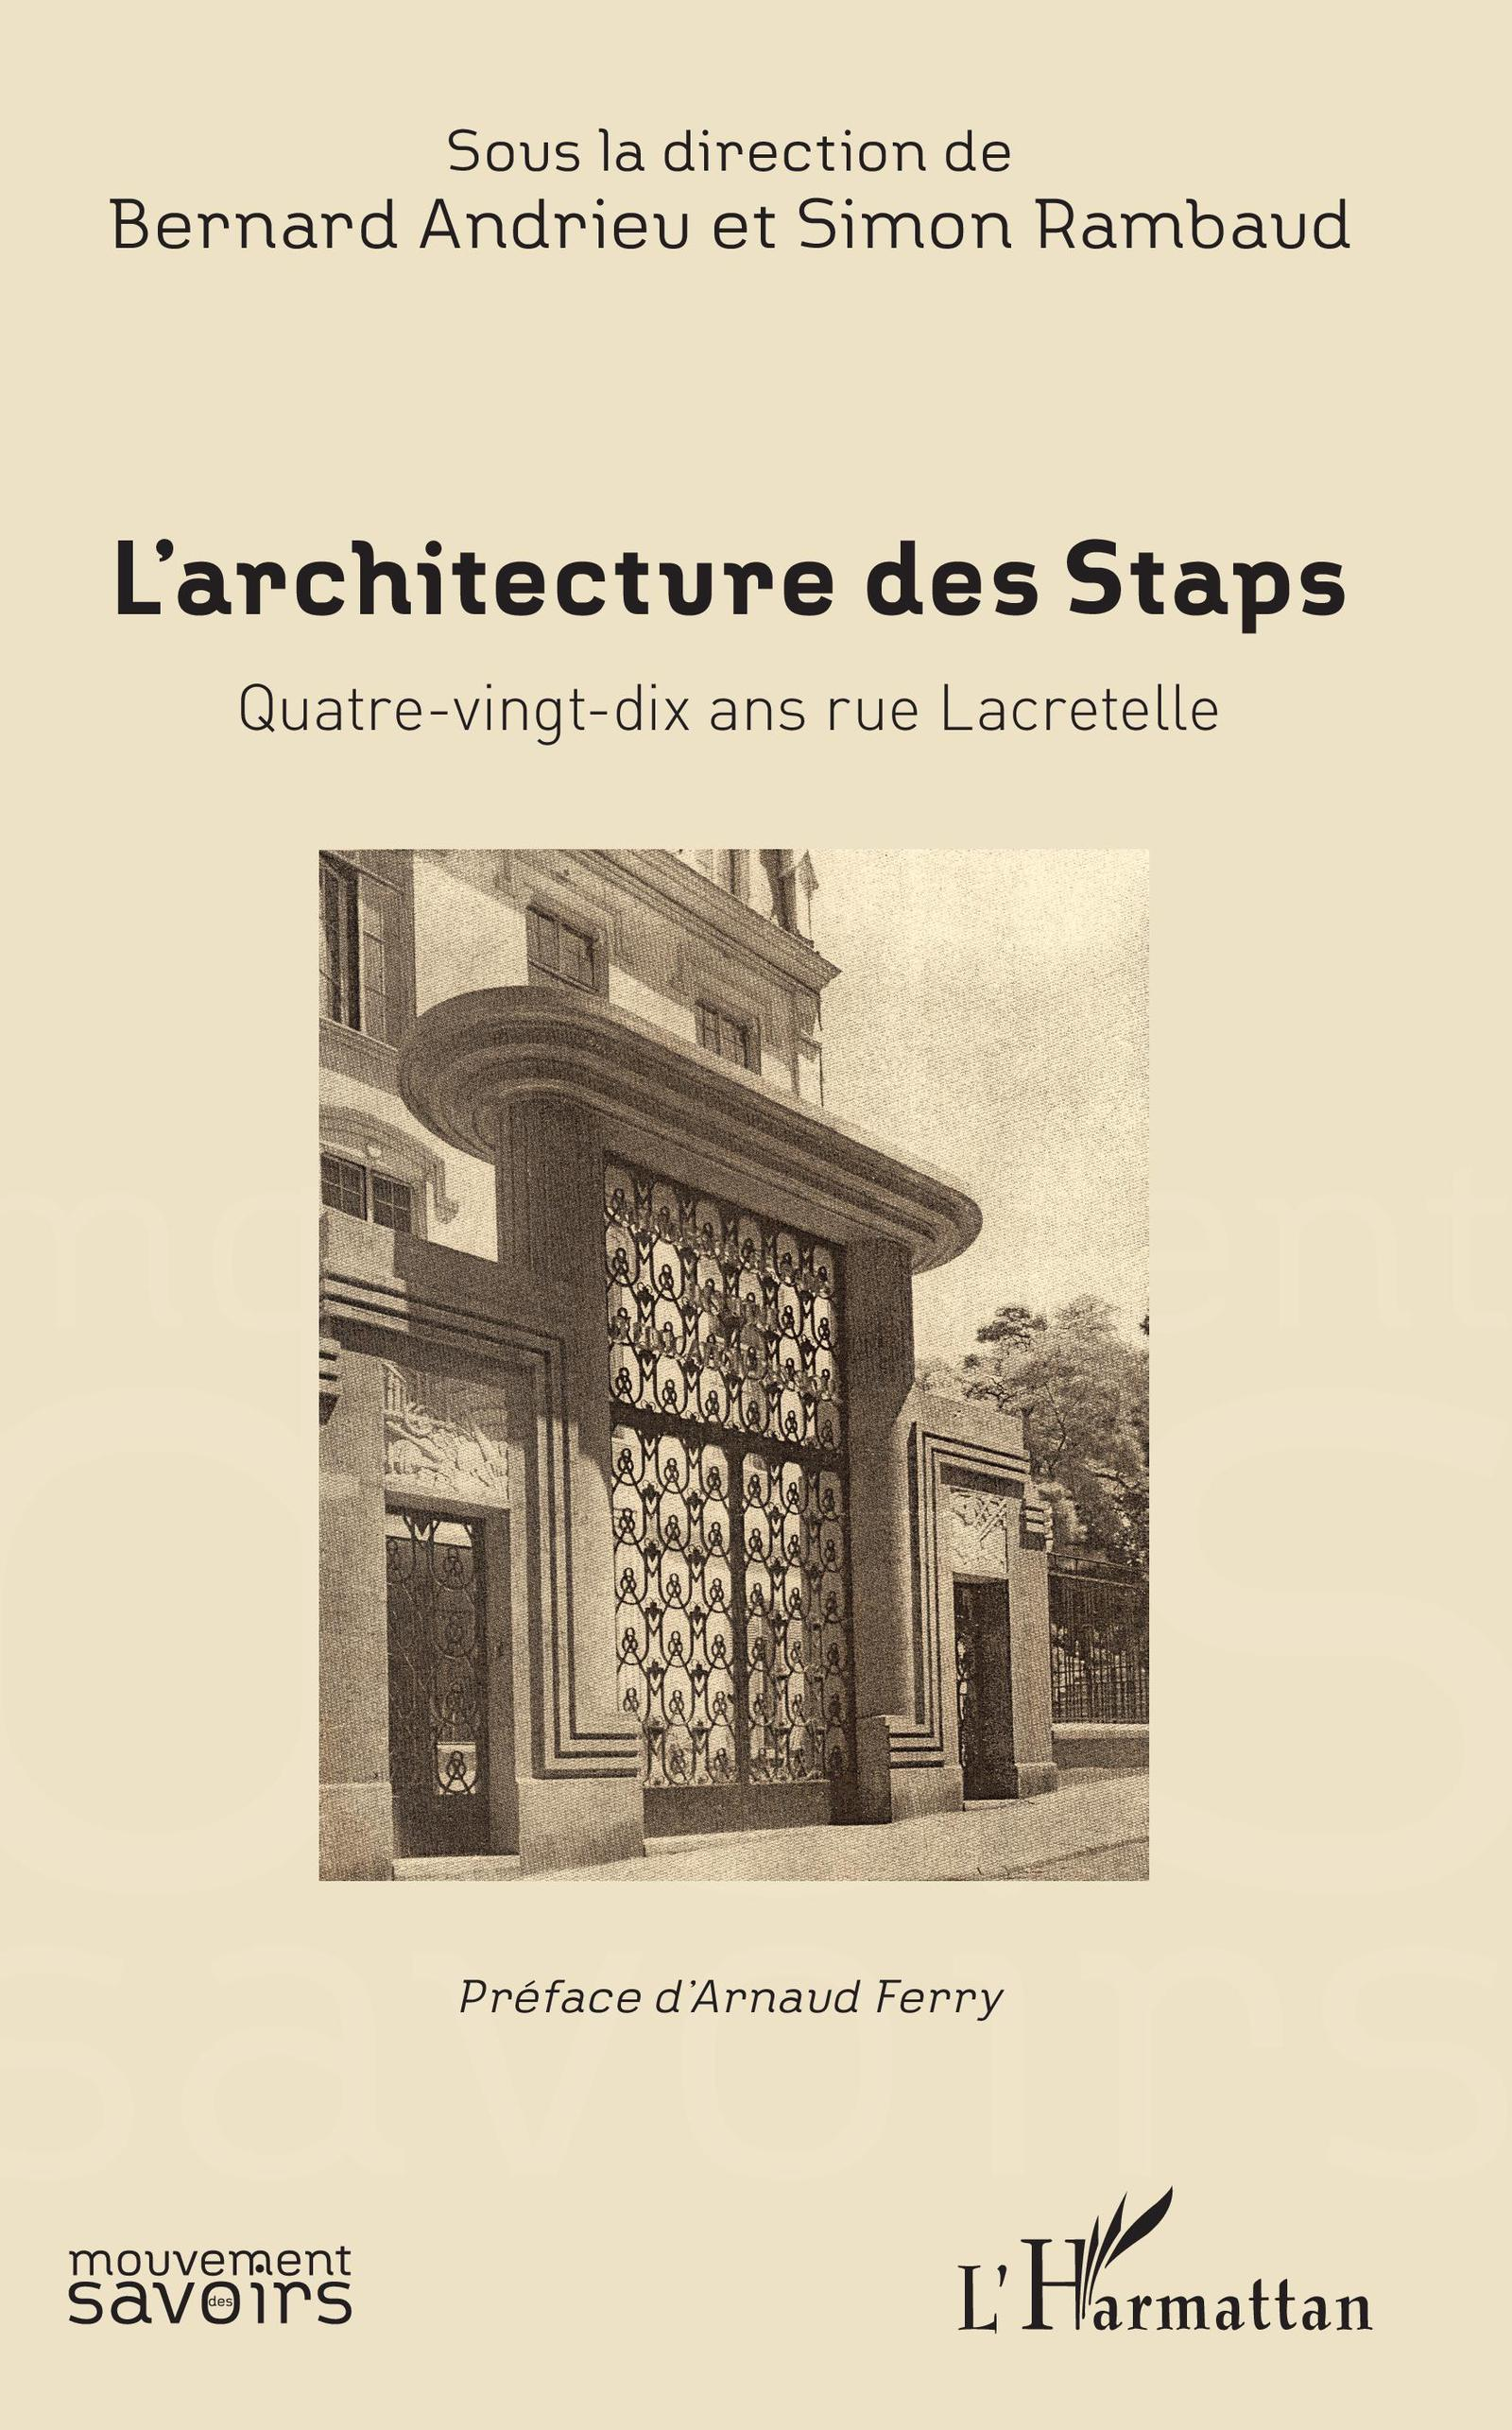 L'Architecture des Staps